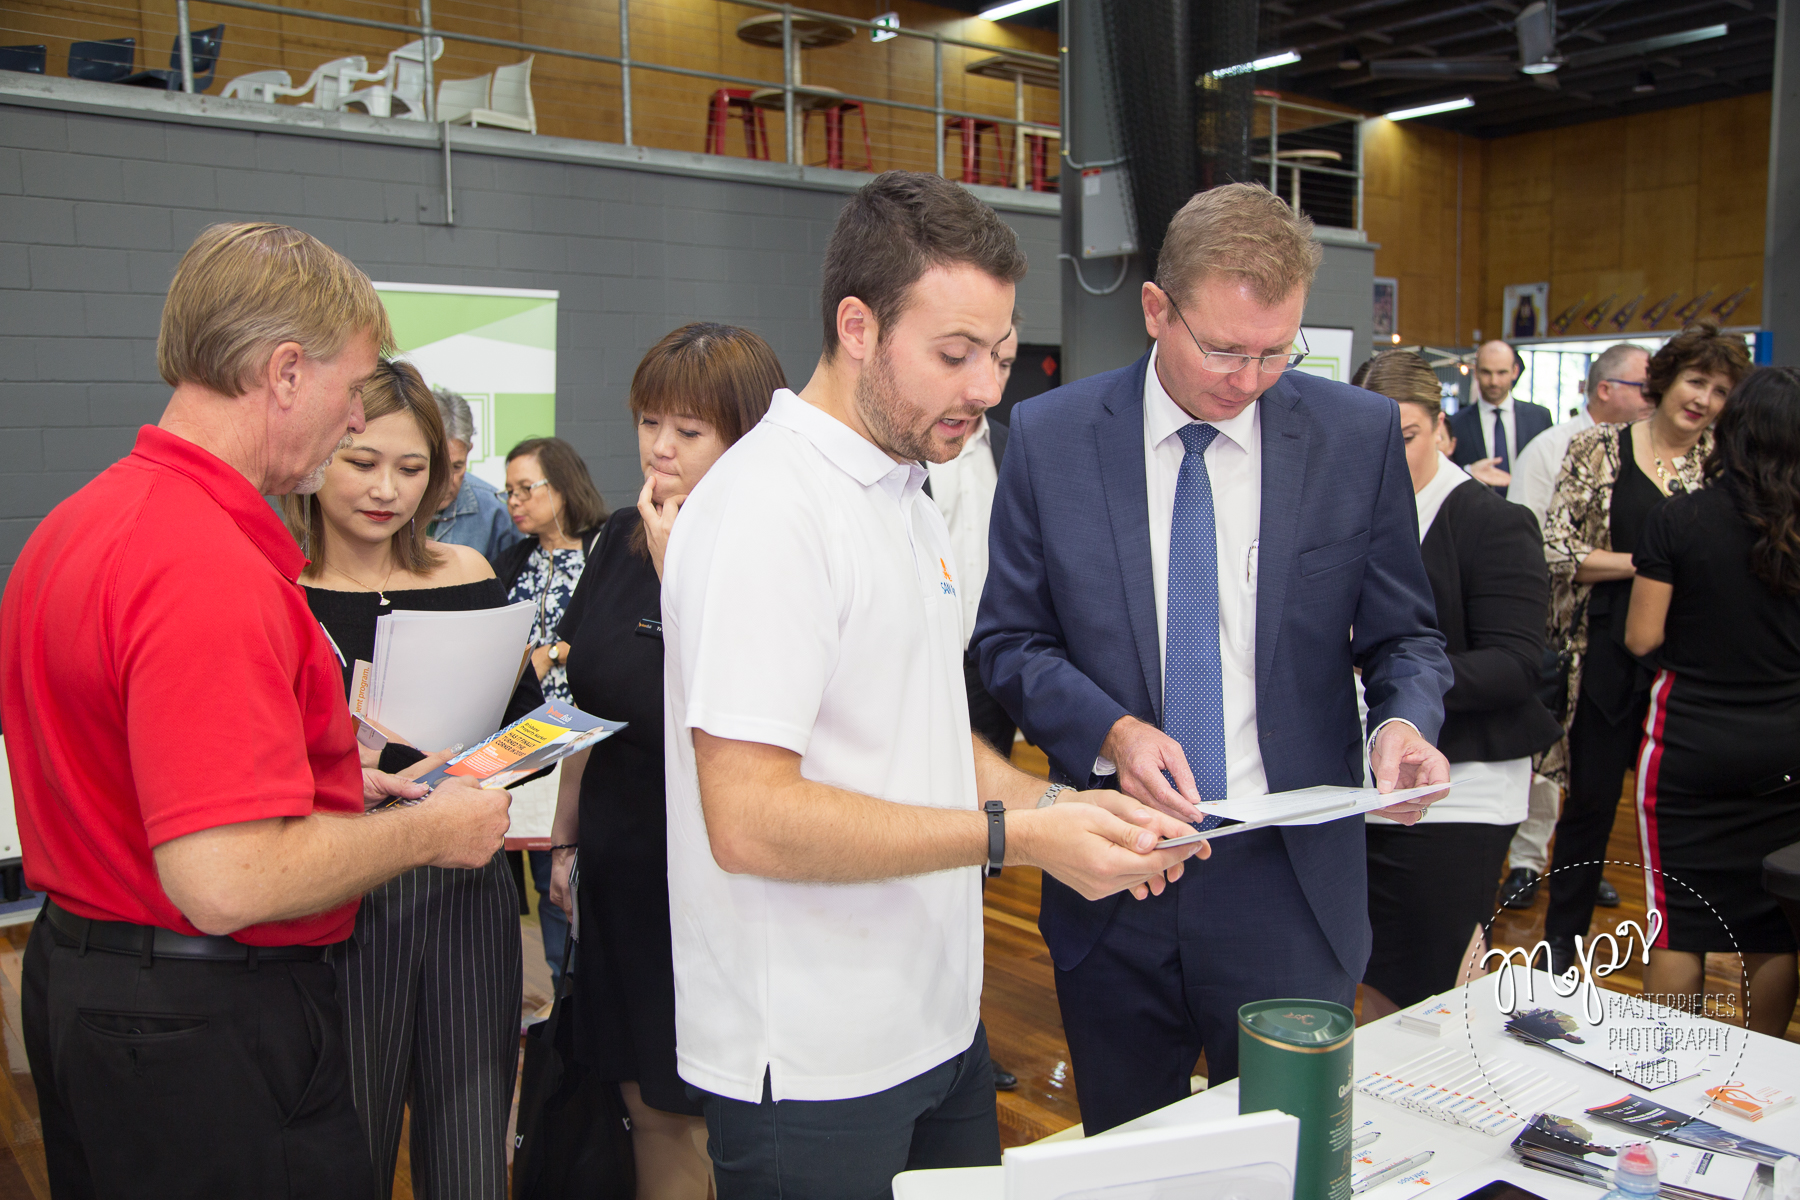 Business Expos   Brisbane   Gold Coast   Small Business Expos   Sbe Bne 14